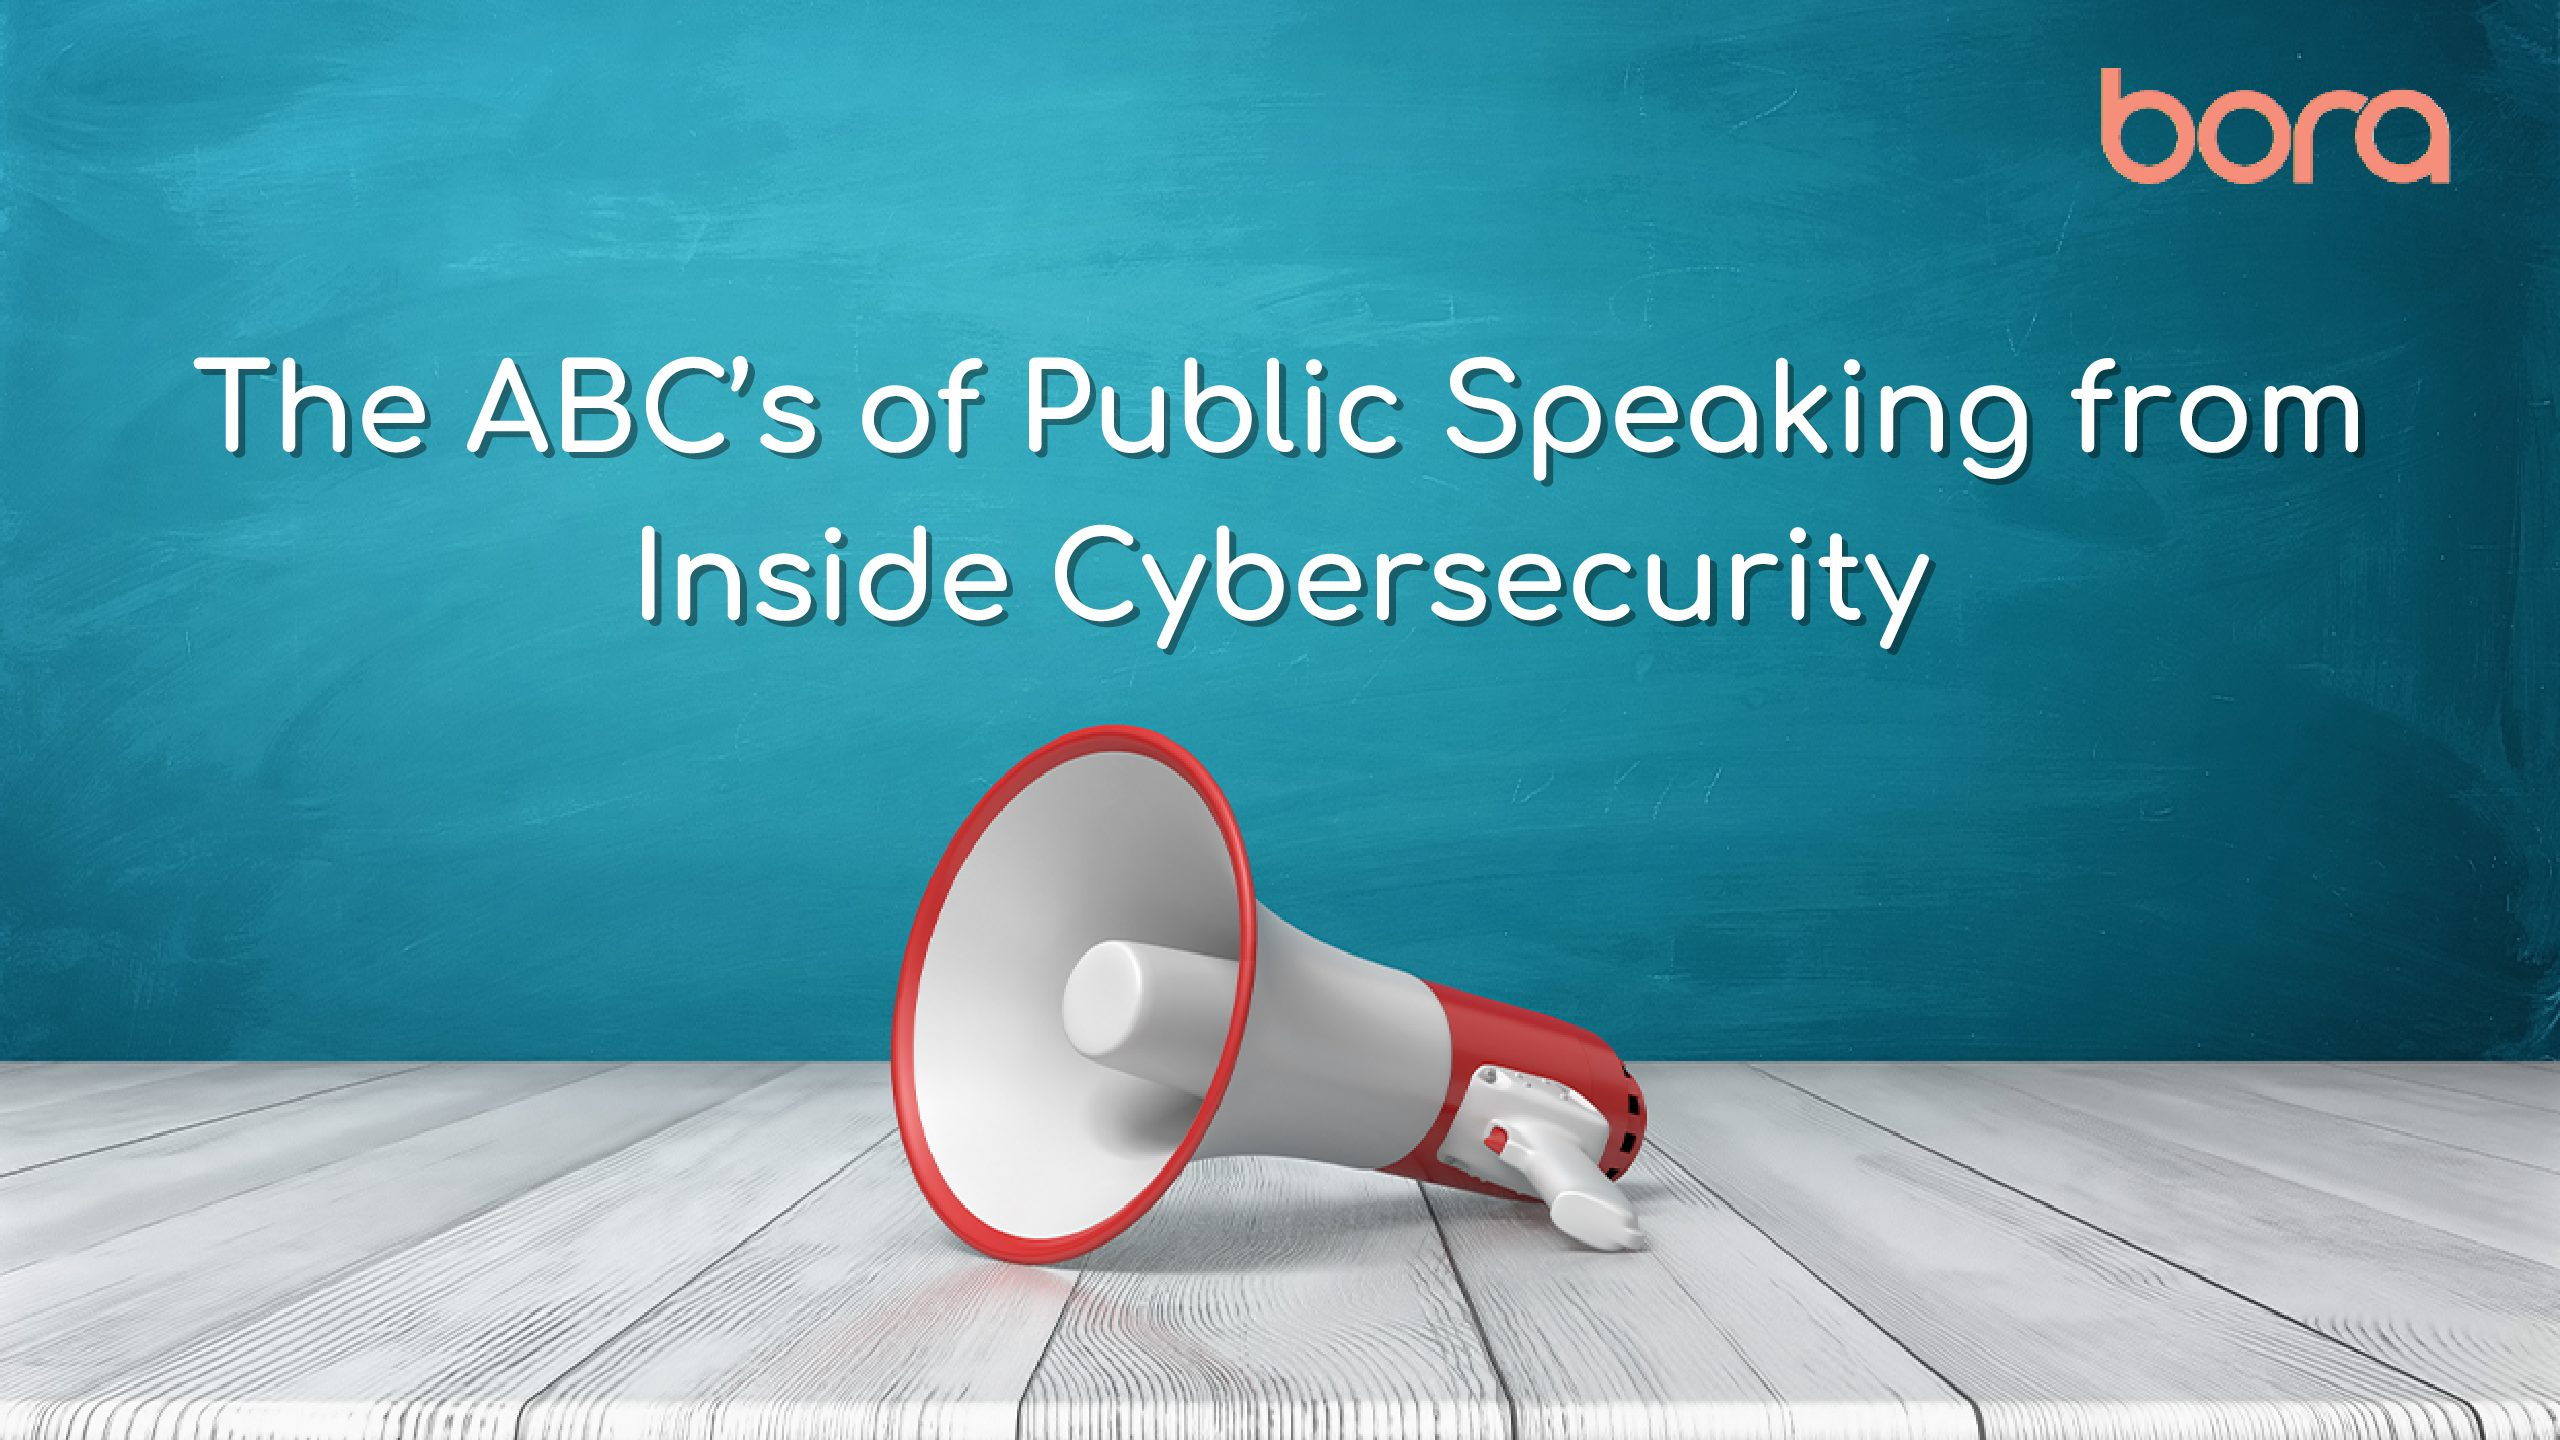 The ABC's of Public Speaking from Inside Cybersecurity